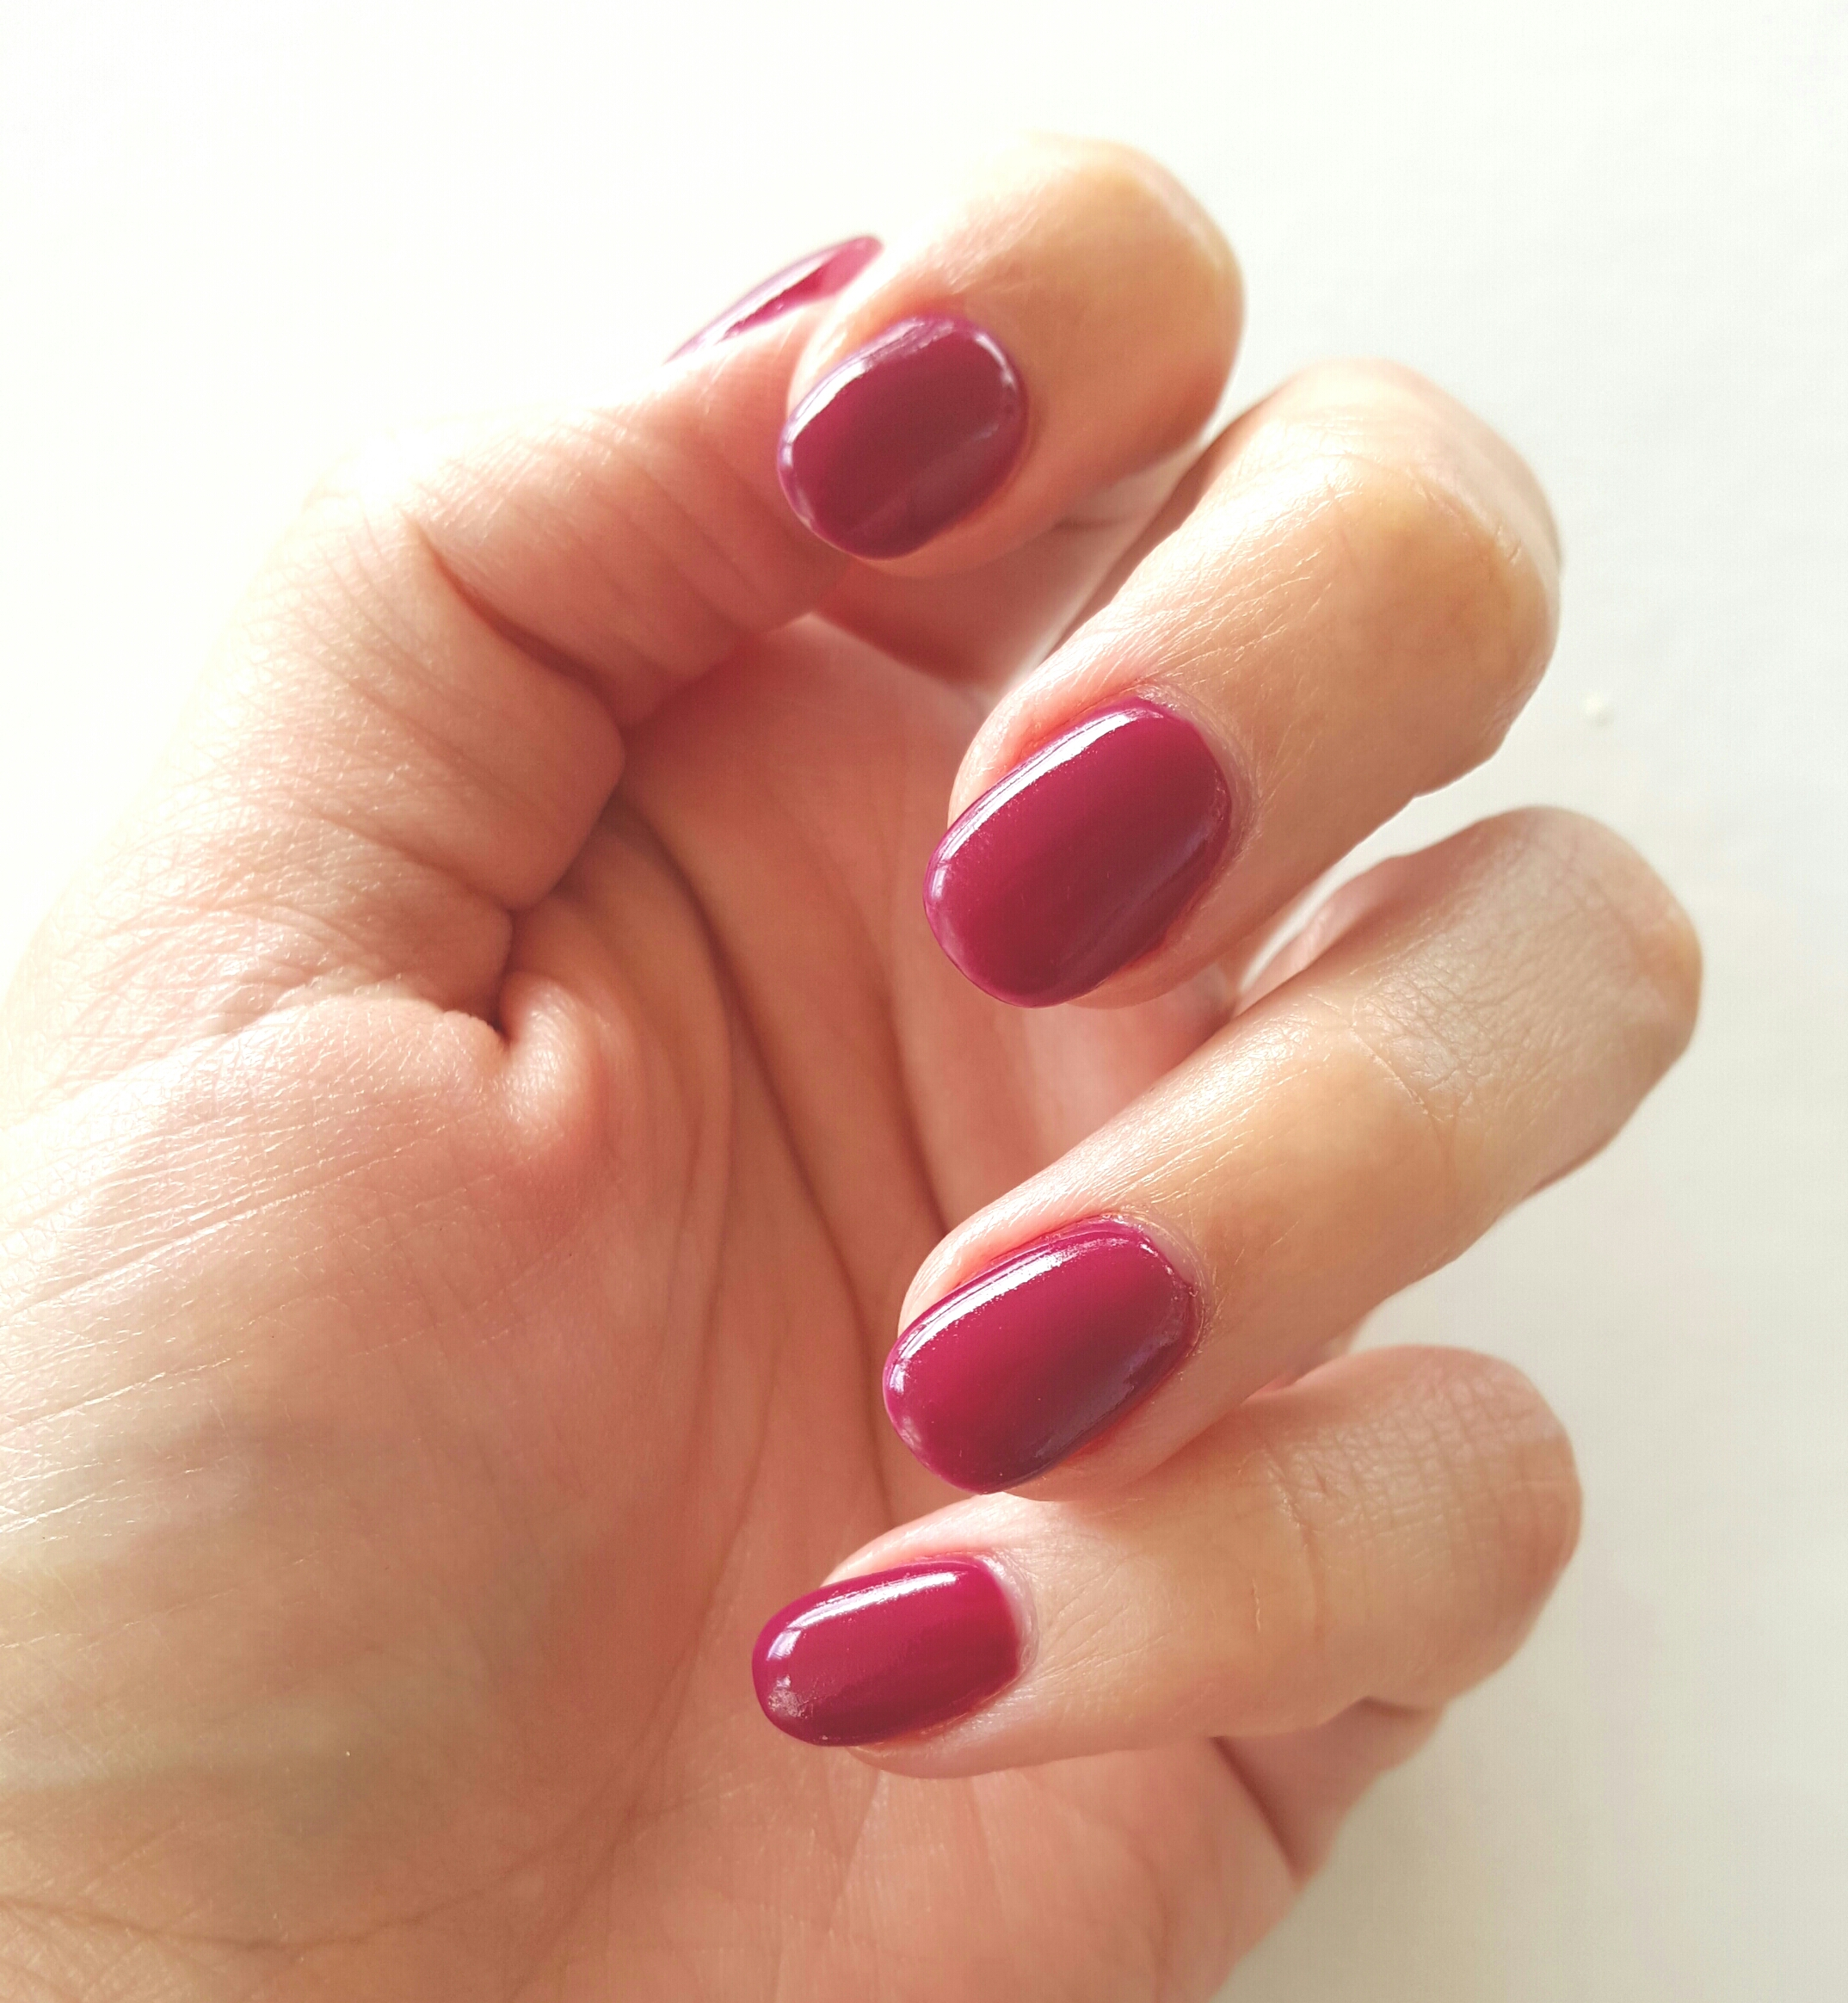 O.P.I GEL NAILS IN MIAMI BEET | The Beautorialist